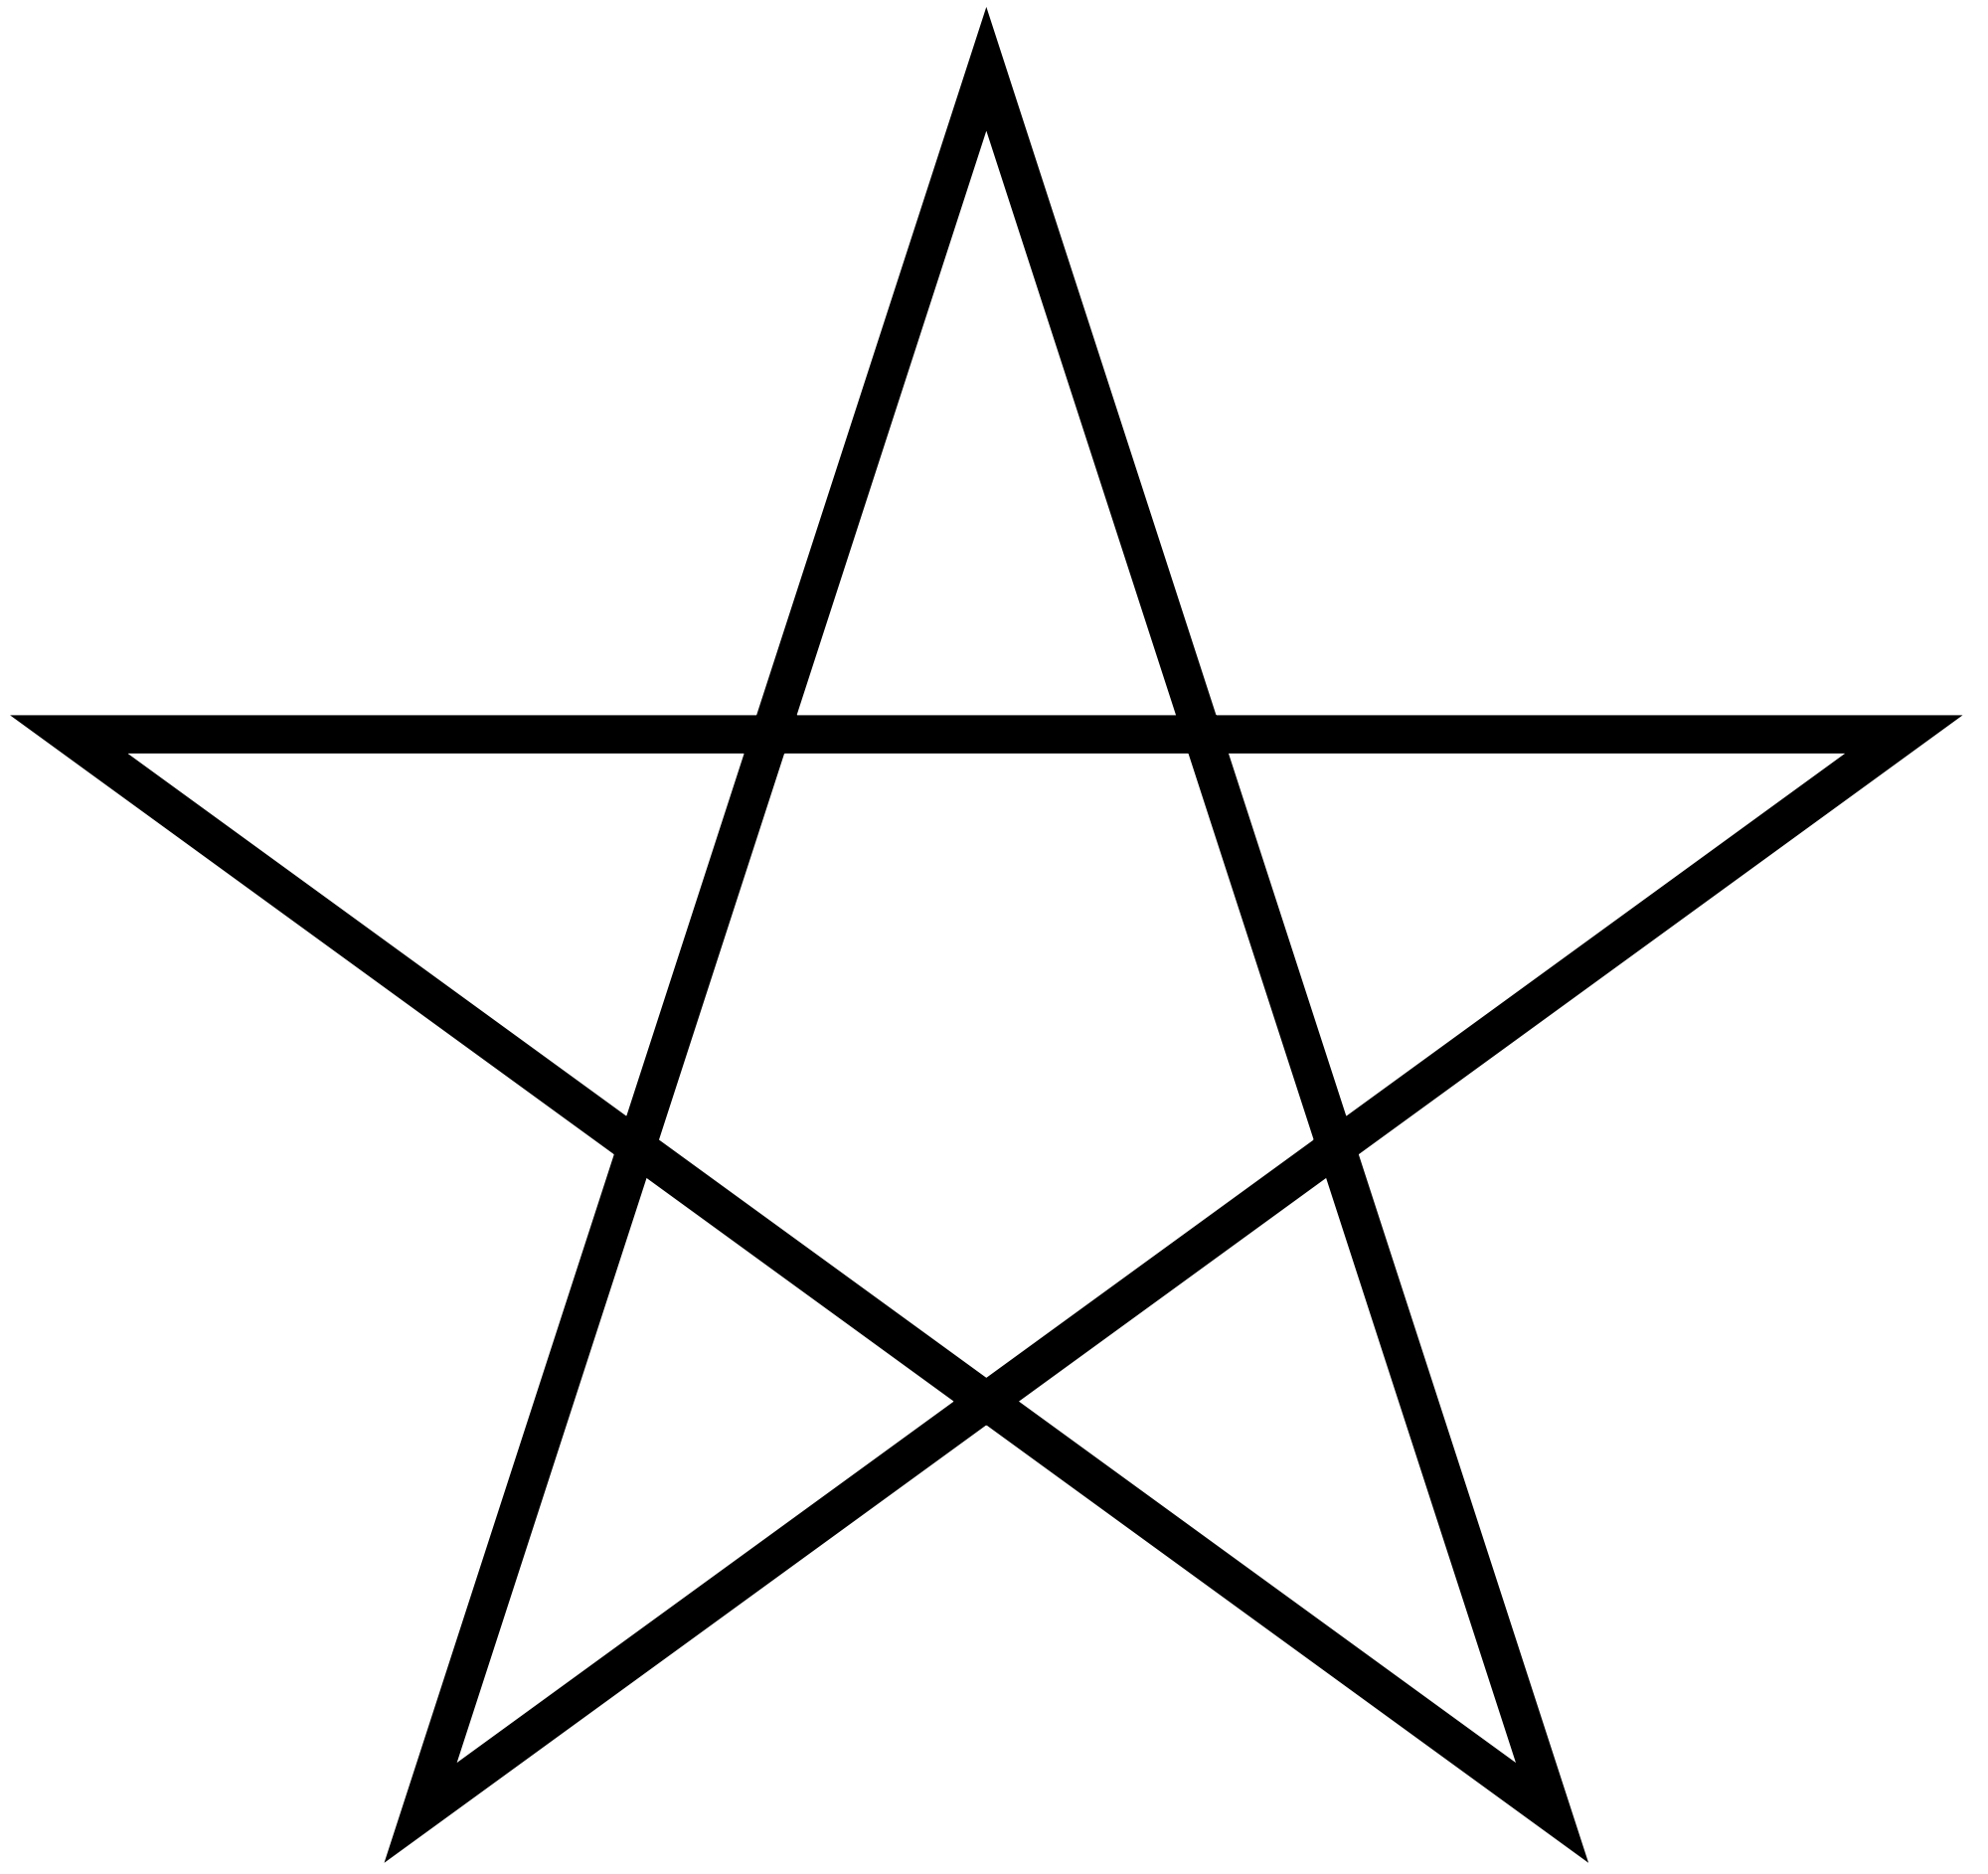 Pointing Clipart Double Star Pointing Double Star